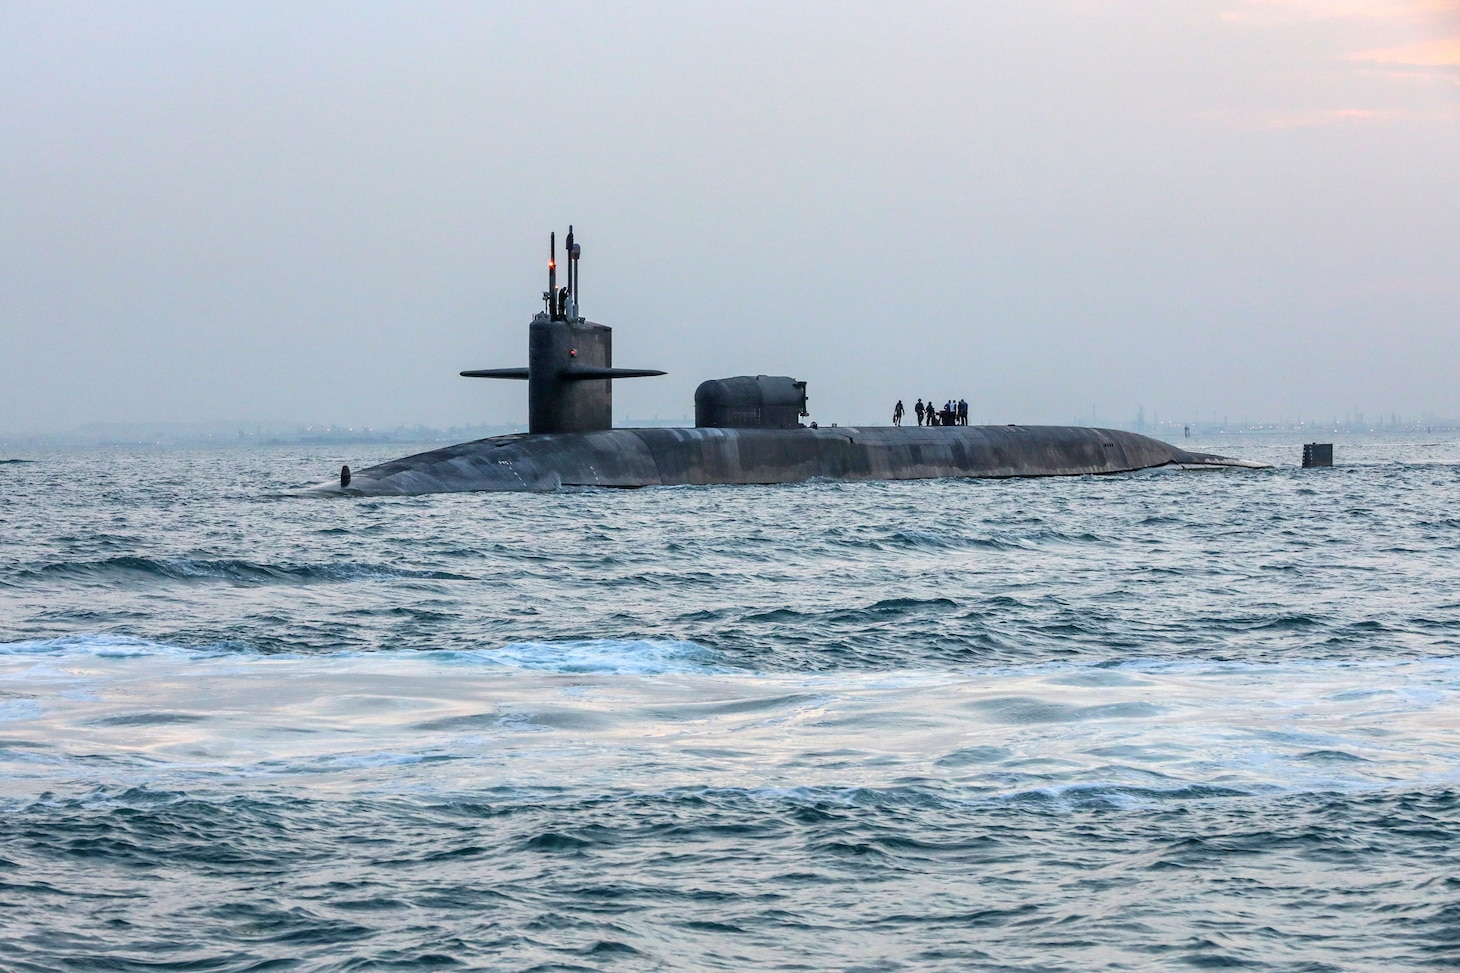 The guided-missile submarine USS Georgia (SSGN 729) transits the Gulf of Bahrain, outbound from a sustainment and logistics visit in Manama, Bahrain, Dec. 27, 2021.